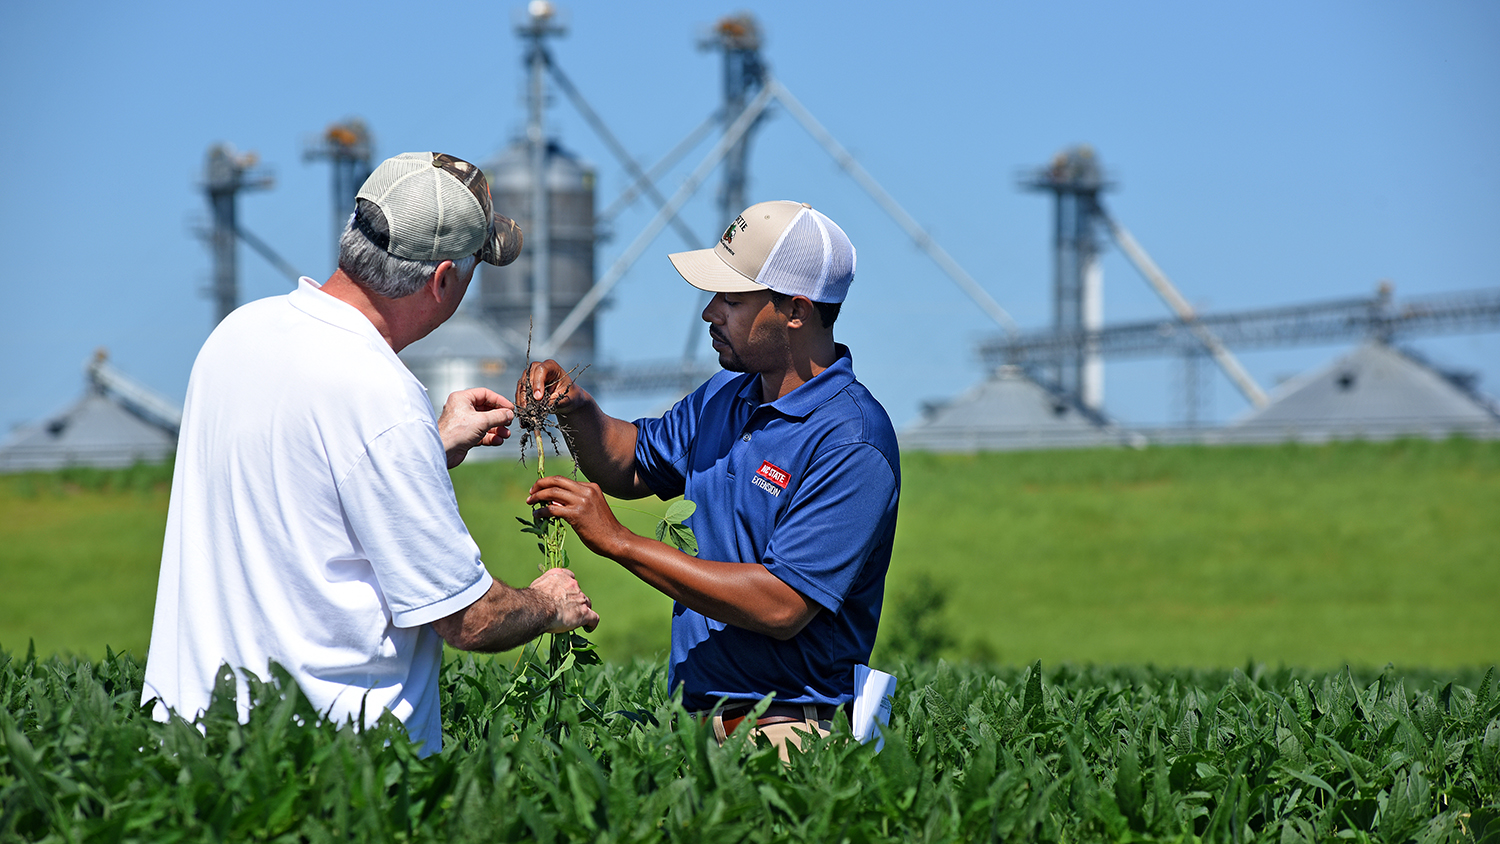 Agent and farmer in a field looking at soybean plants